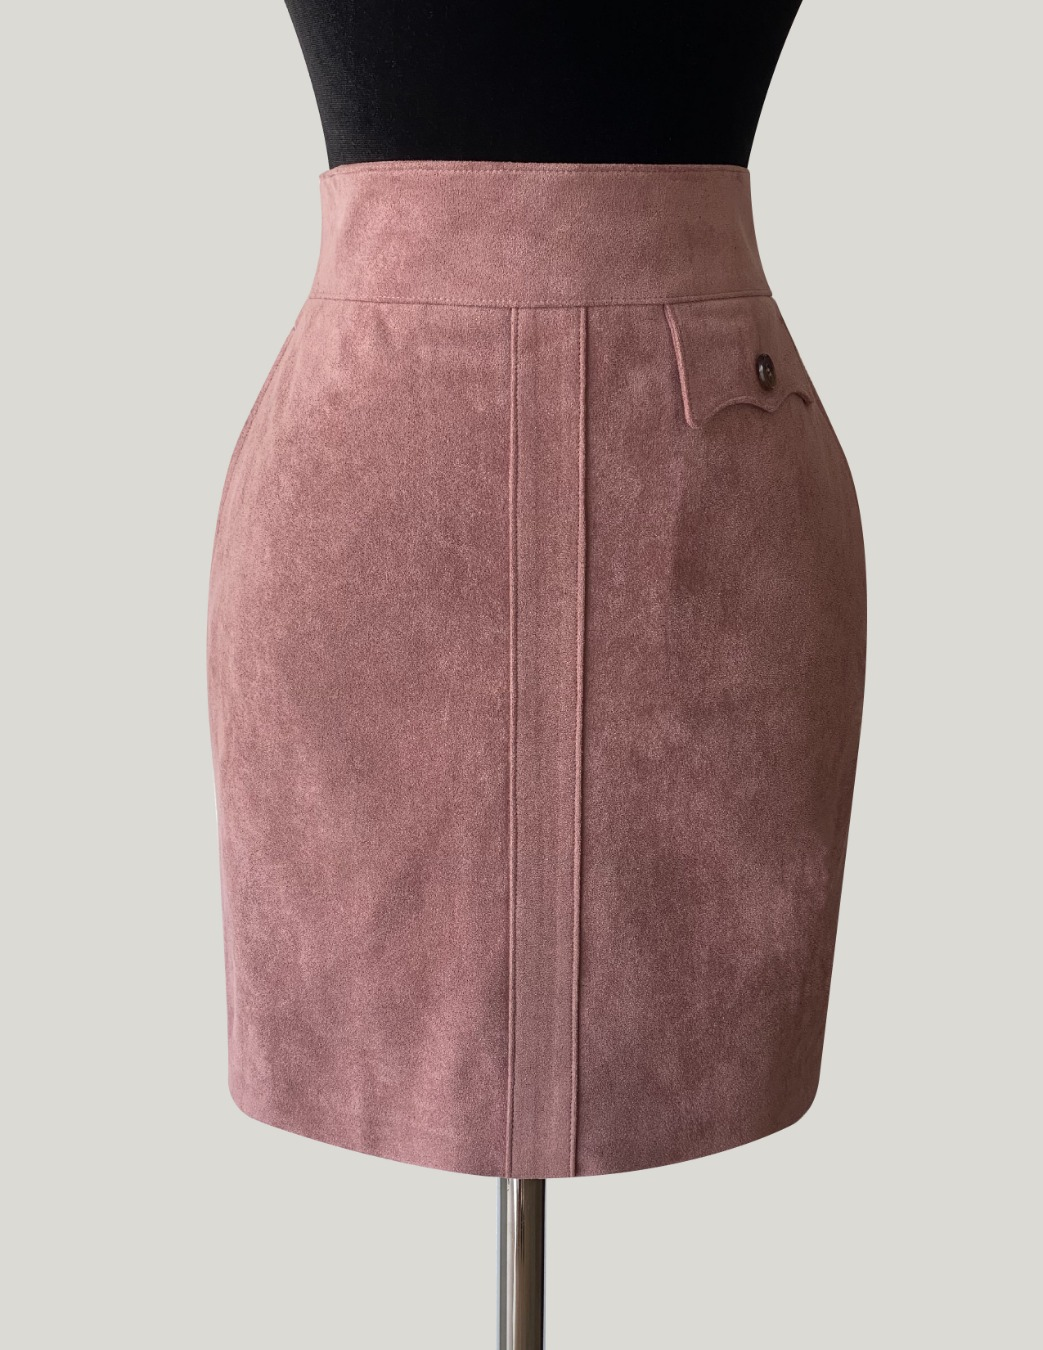 PINK MILITARY SUEDE SKIRT